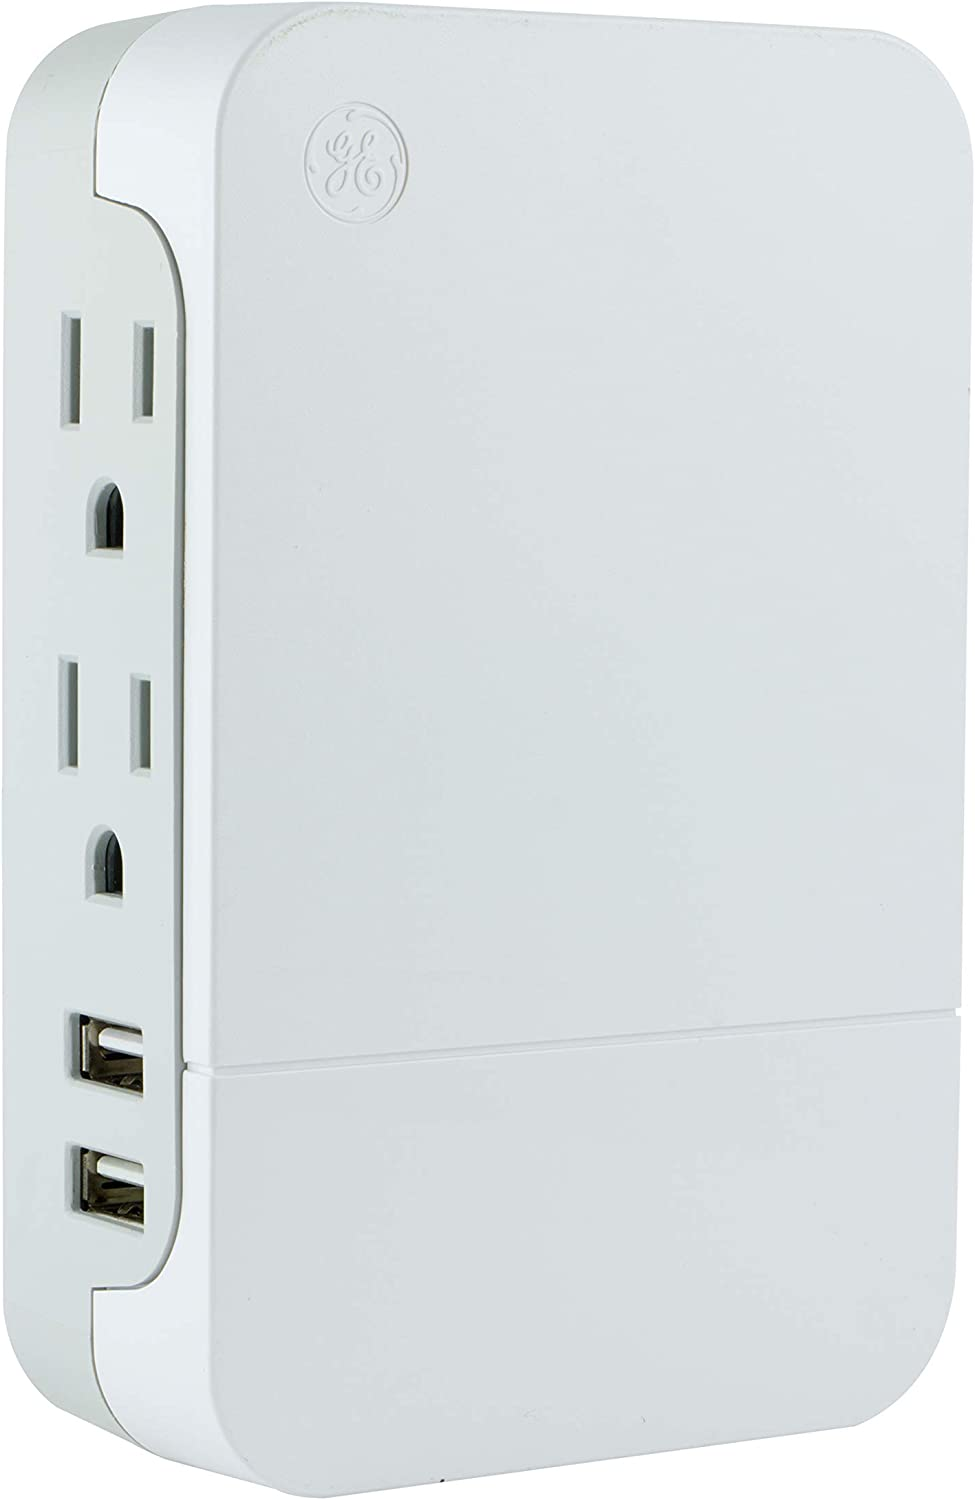 GE Pro 2-Outlet + 2 USB Side-Access Surge Protector, White, 2.4A/12W, 560 Joules, White, 31711